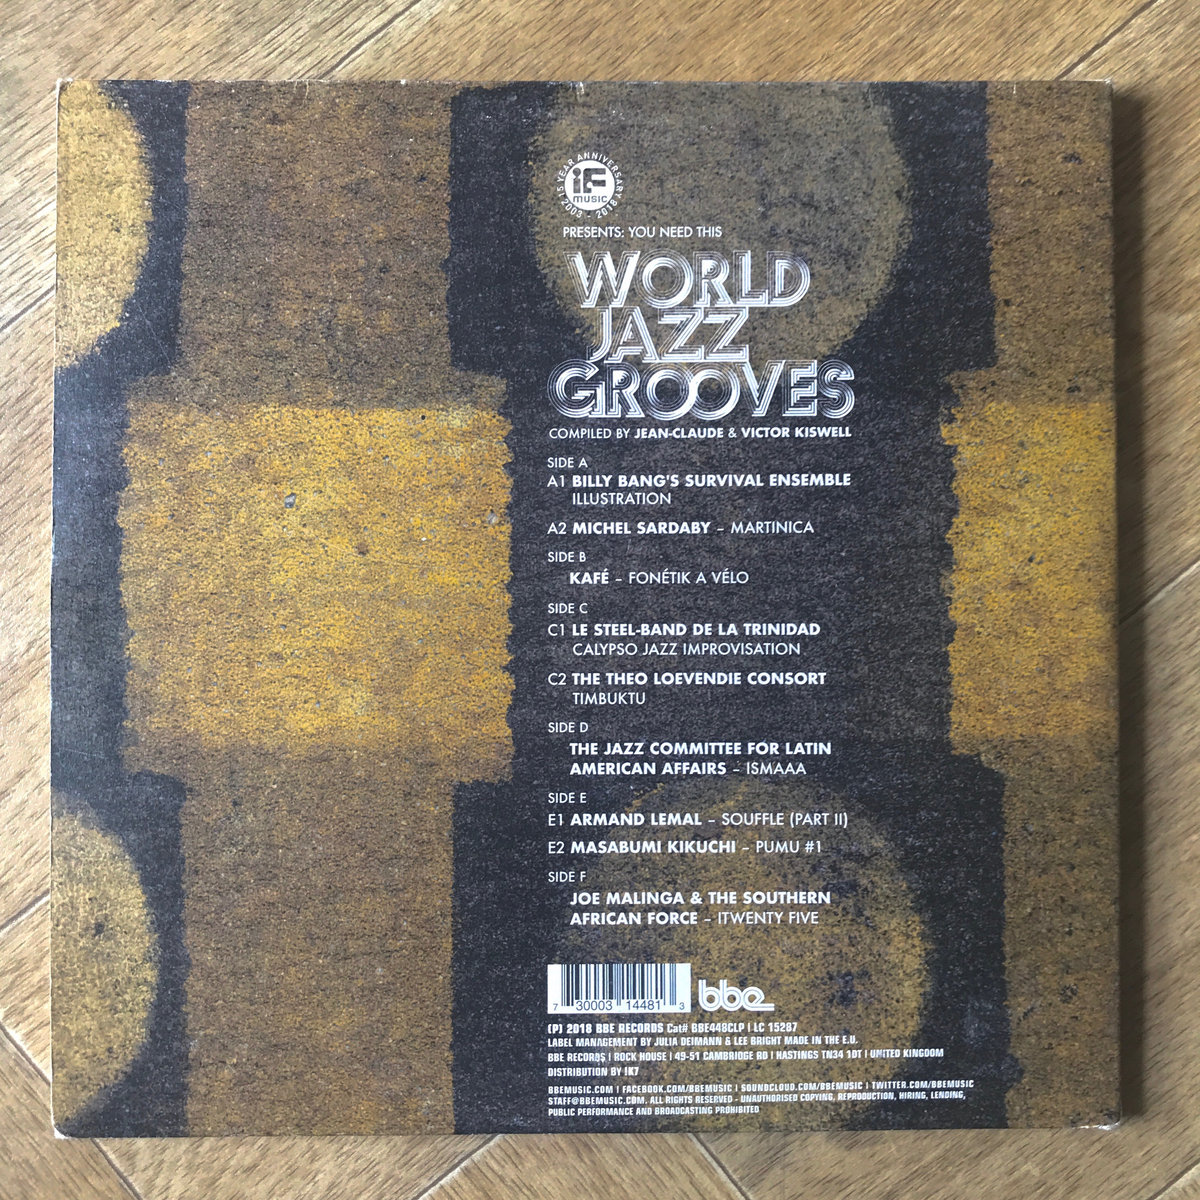 IF Music Presents: You Need This World Jazz Grooves Compiled